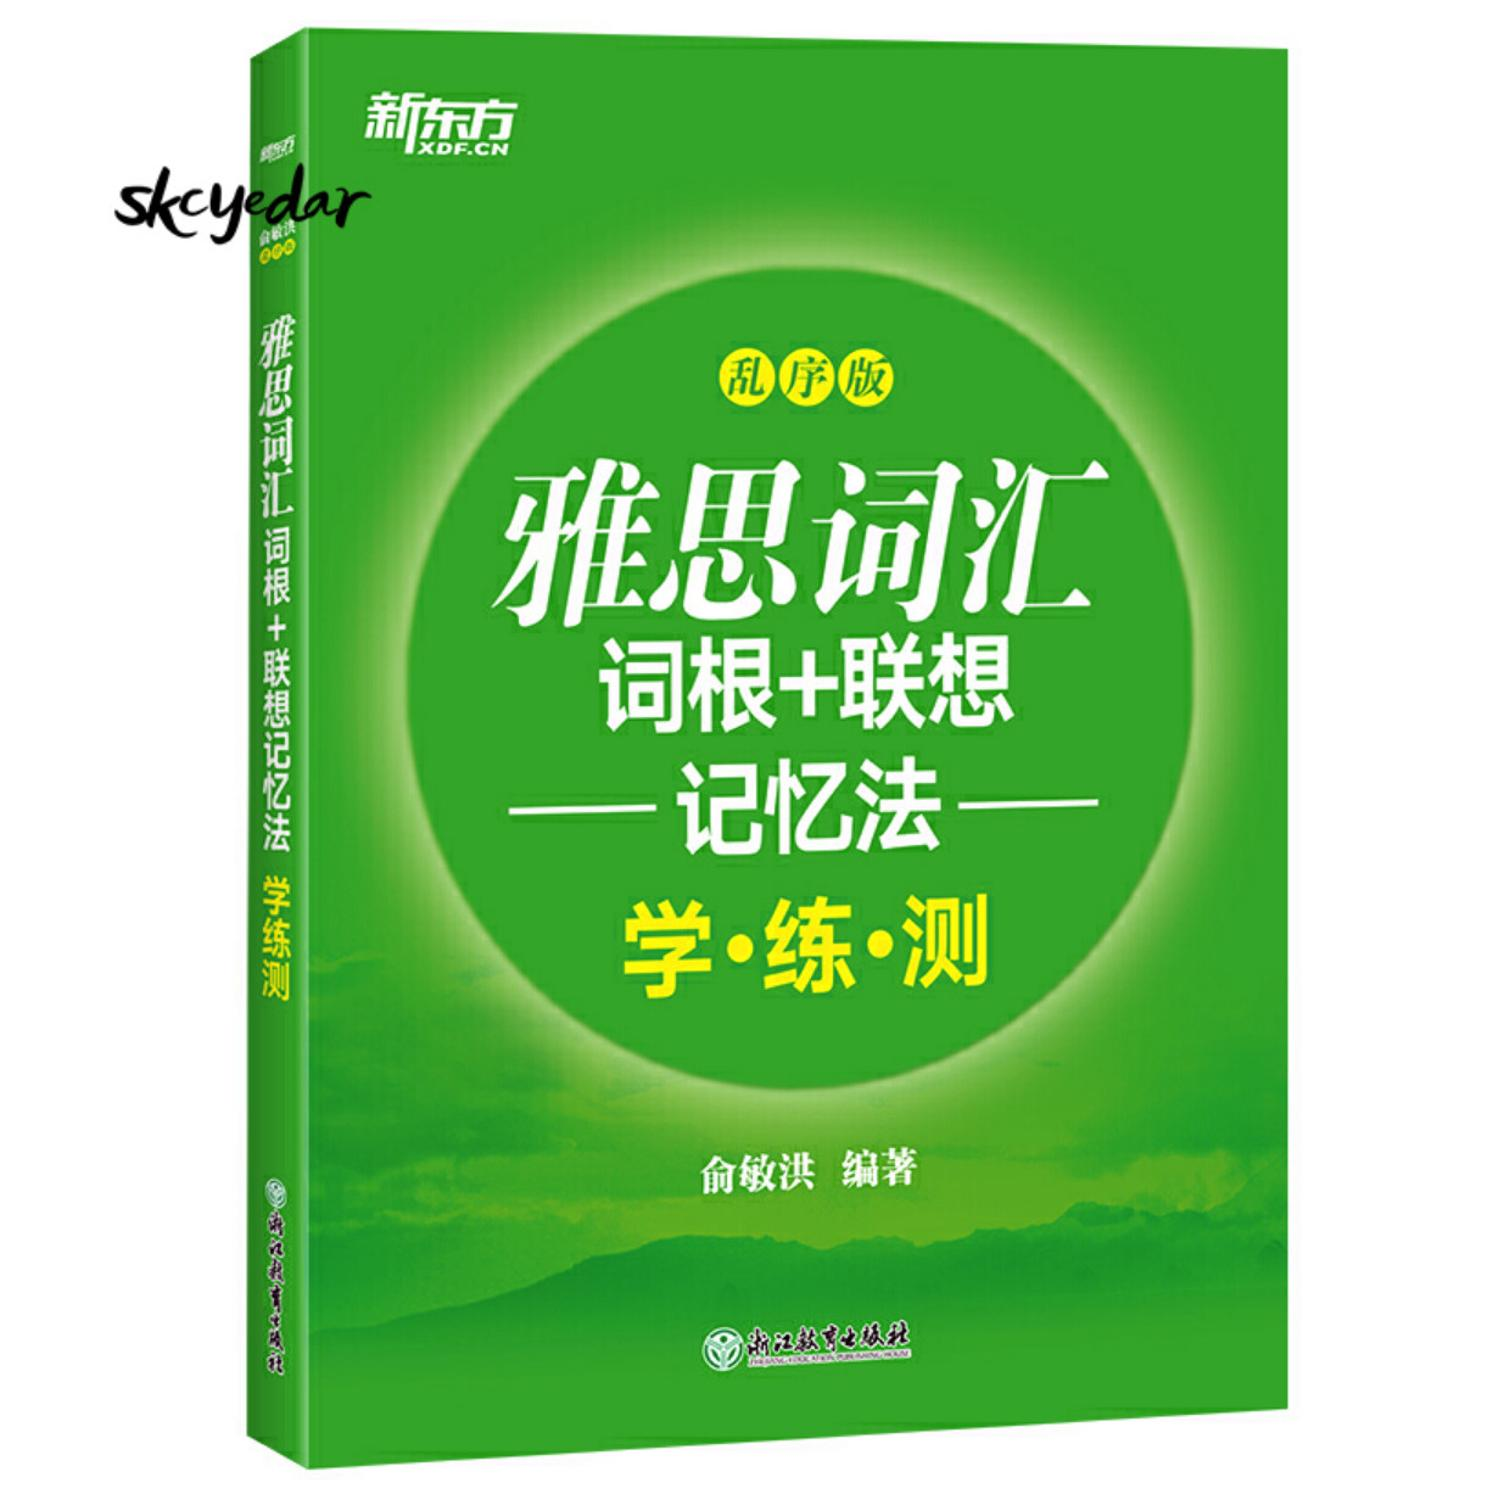 IELTS Vocabulary Root & Associative Memory Method Workbook Chaos Order Edition IELTS Book (Chinese Version) Reference Material